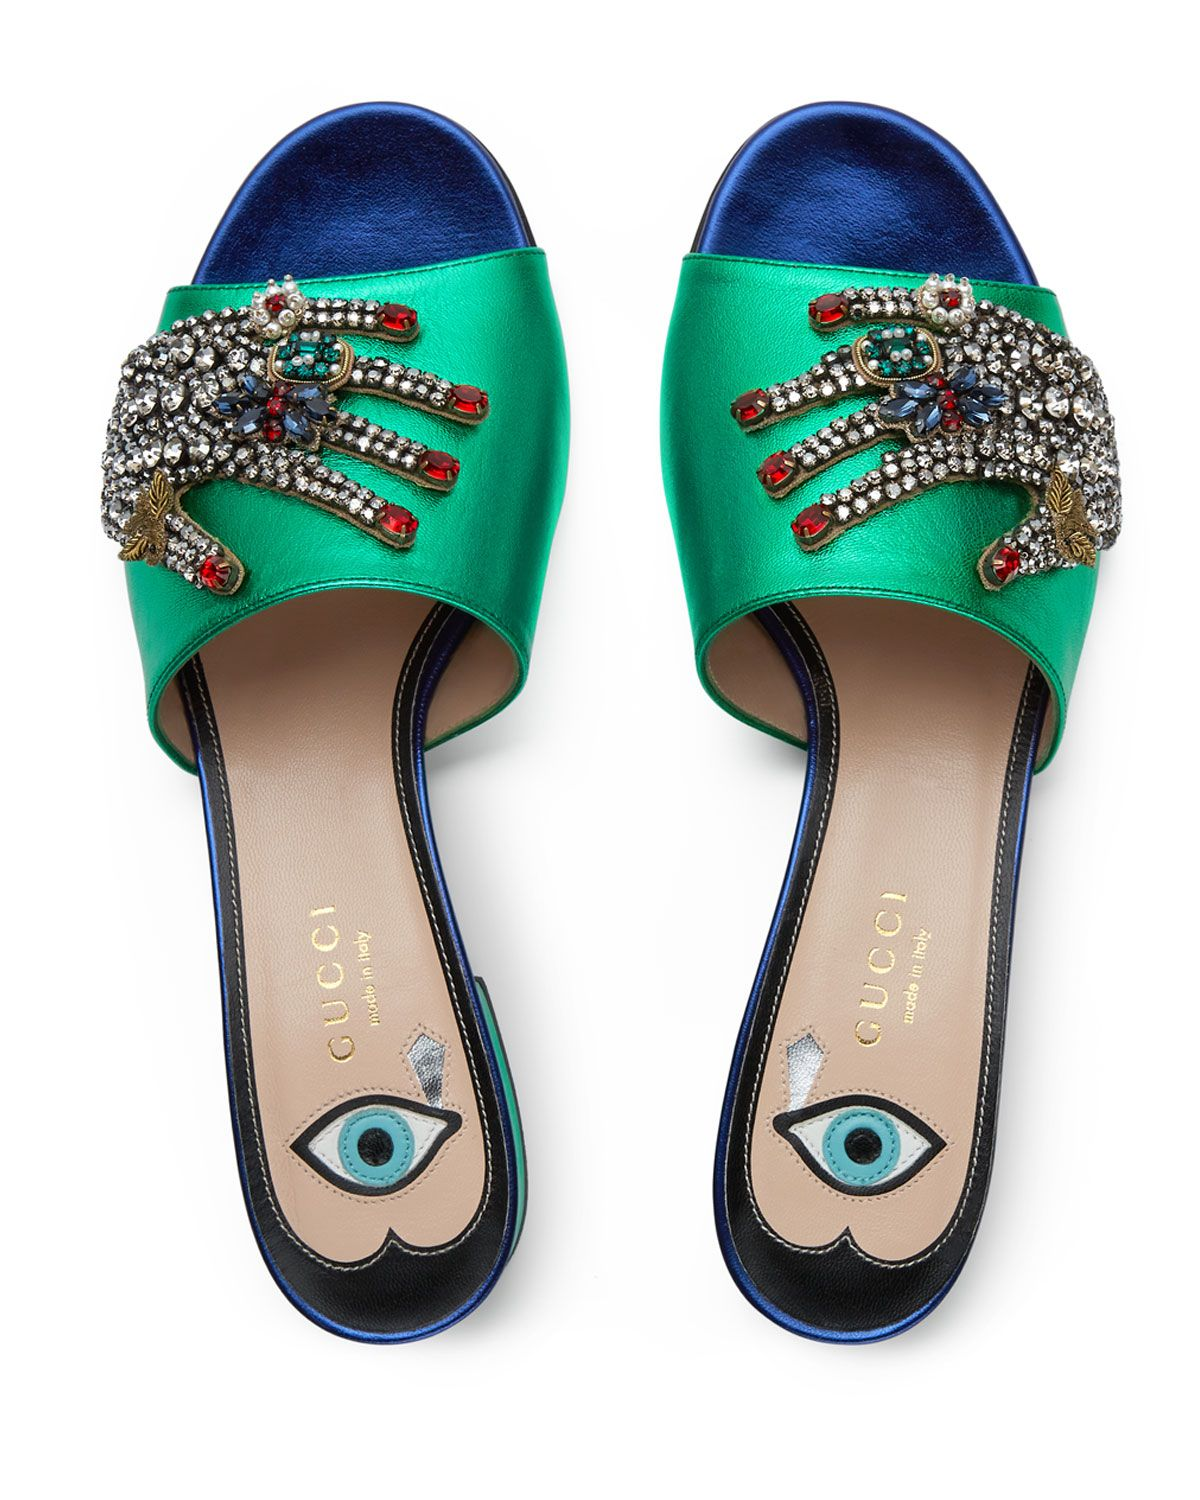 86e5a0953 Gucci Wangy Jeweled Mule Slide